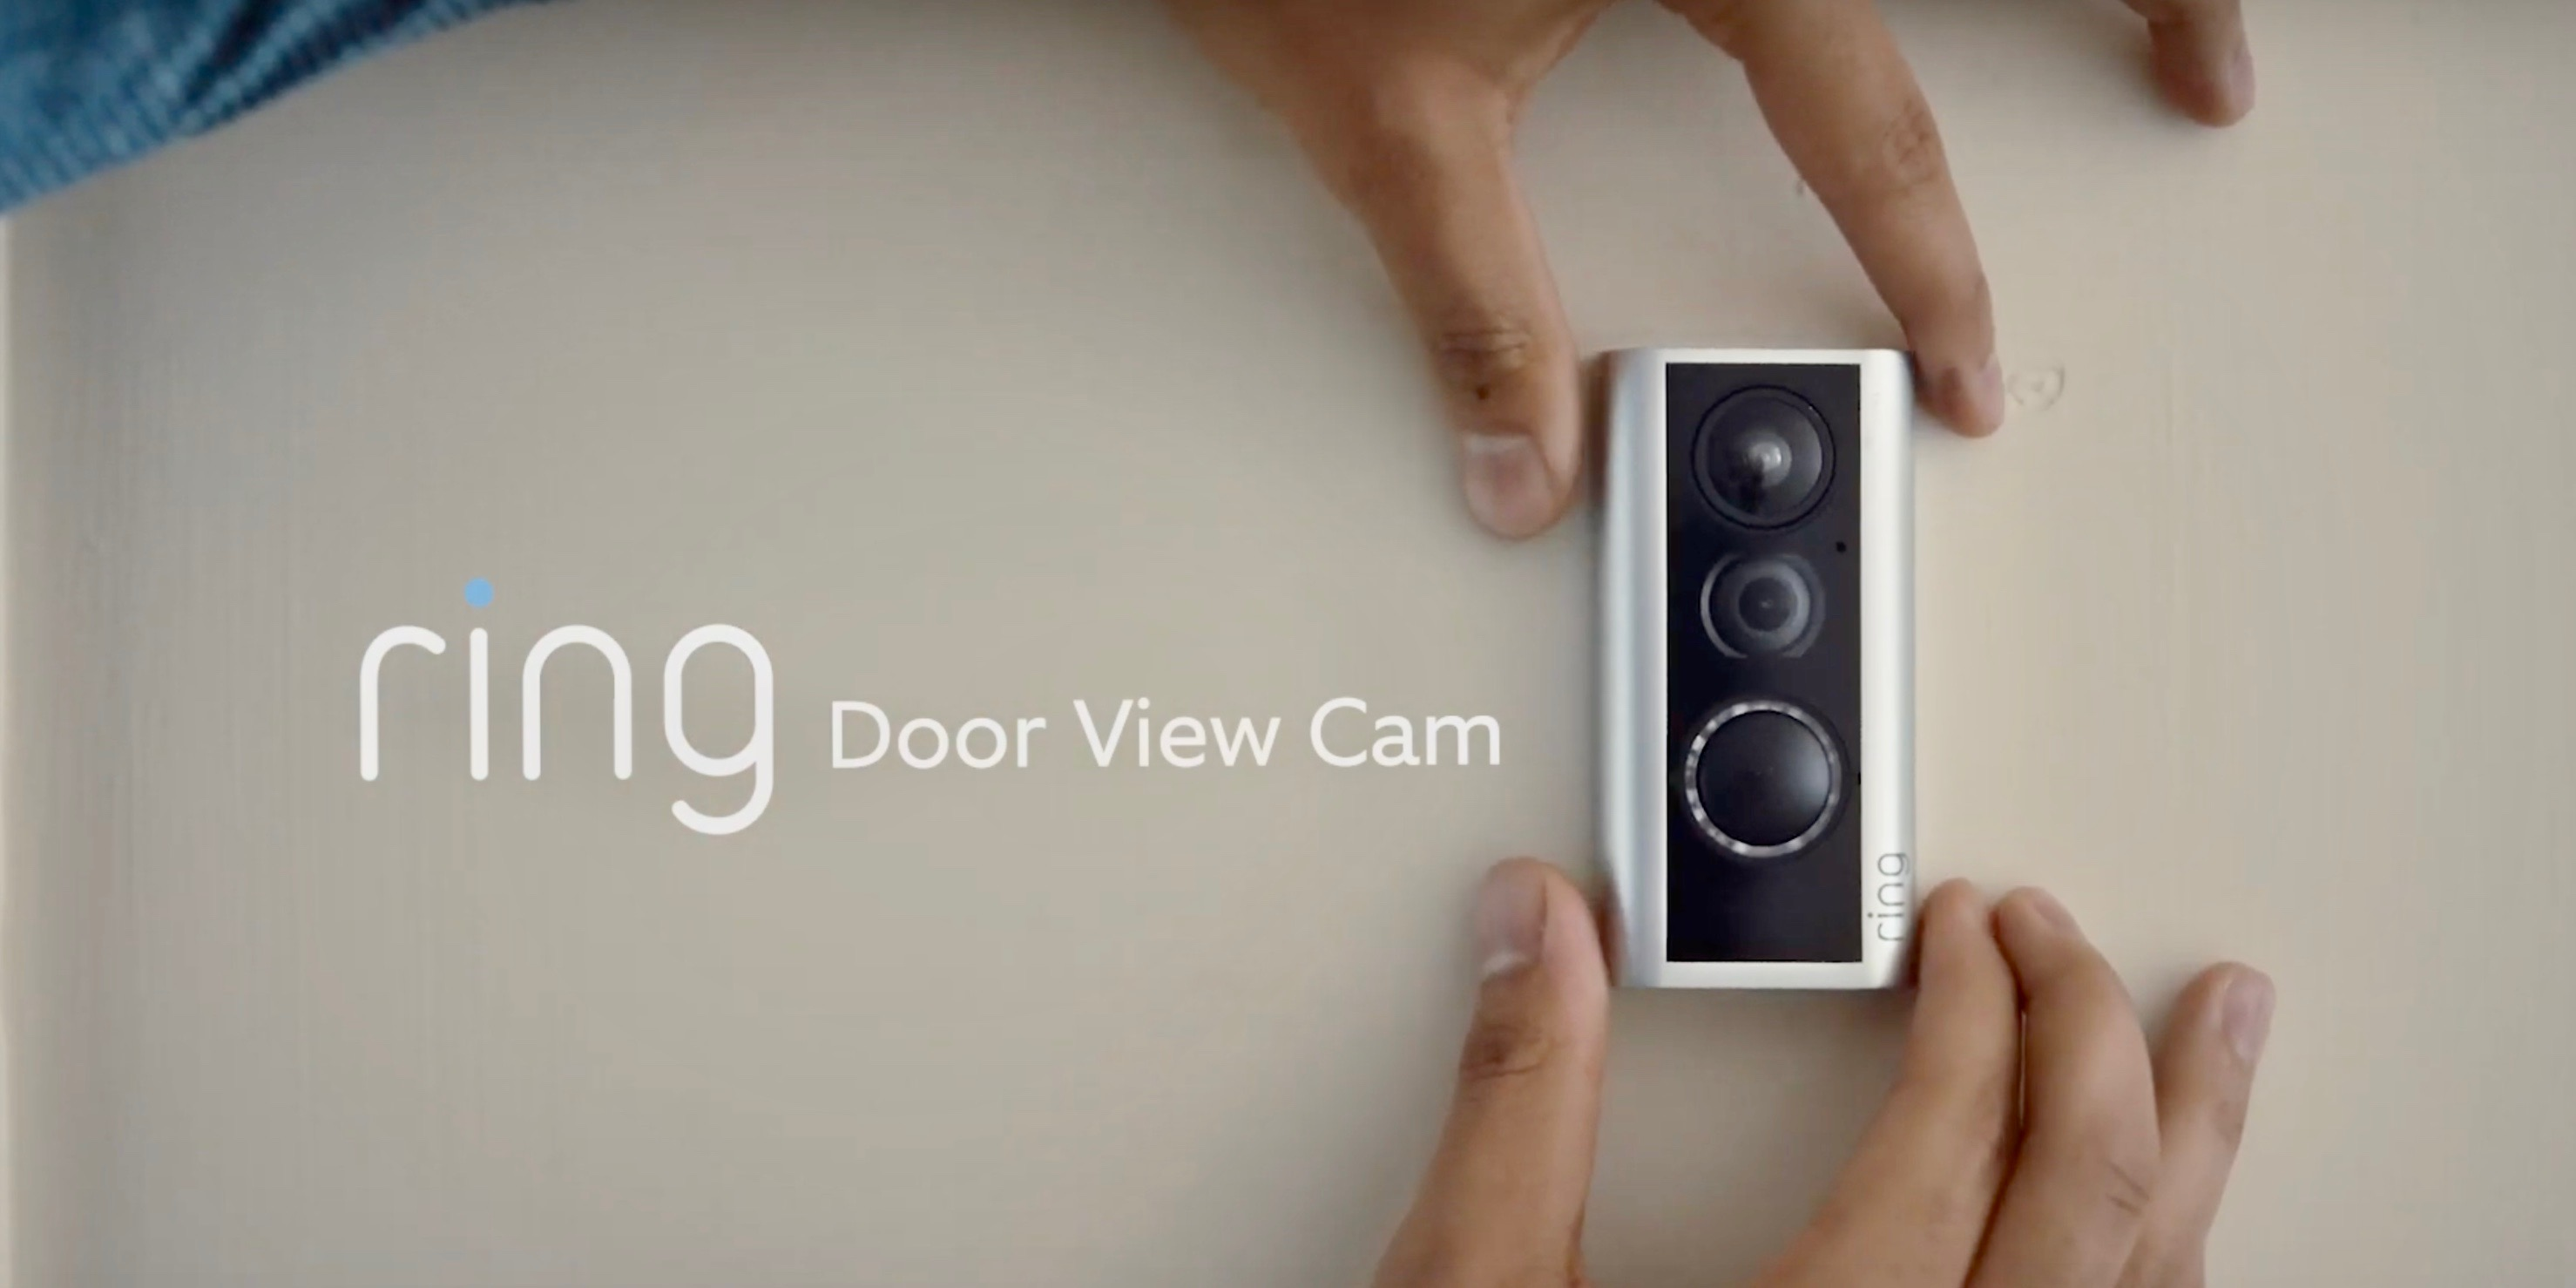 Ring's Door View Cam installs w/o wiring or drilling in peephole + smart lighting, more